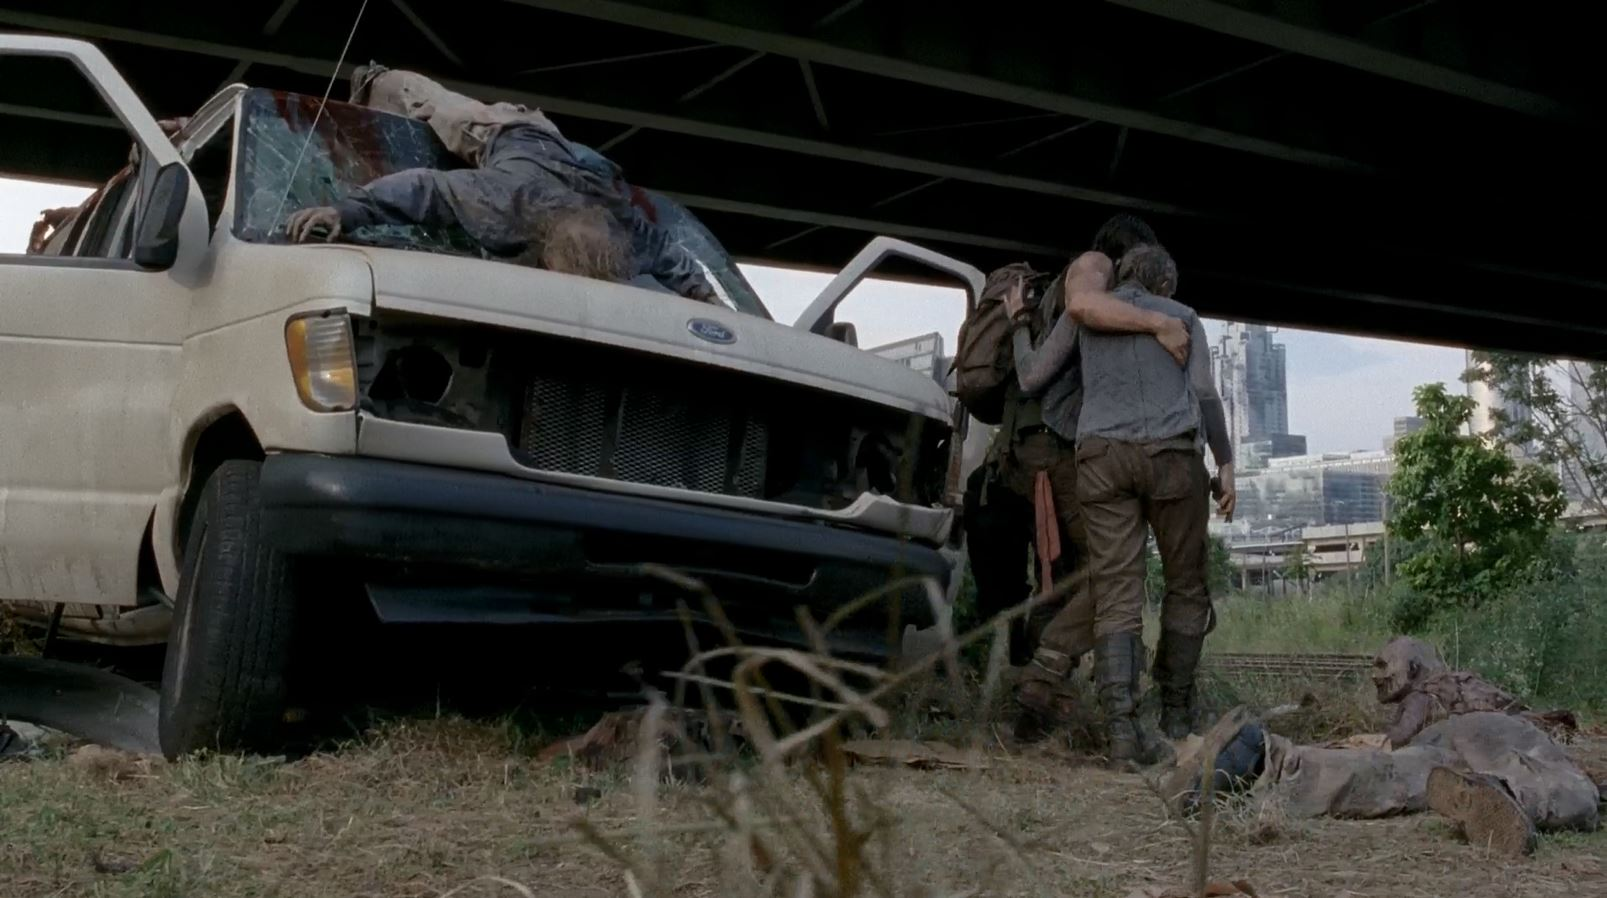 Carol and Daryl manage to walk away from the wreck - The Walking Dead S5Ep6 Consumed Review